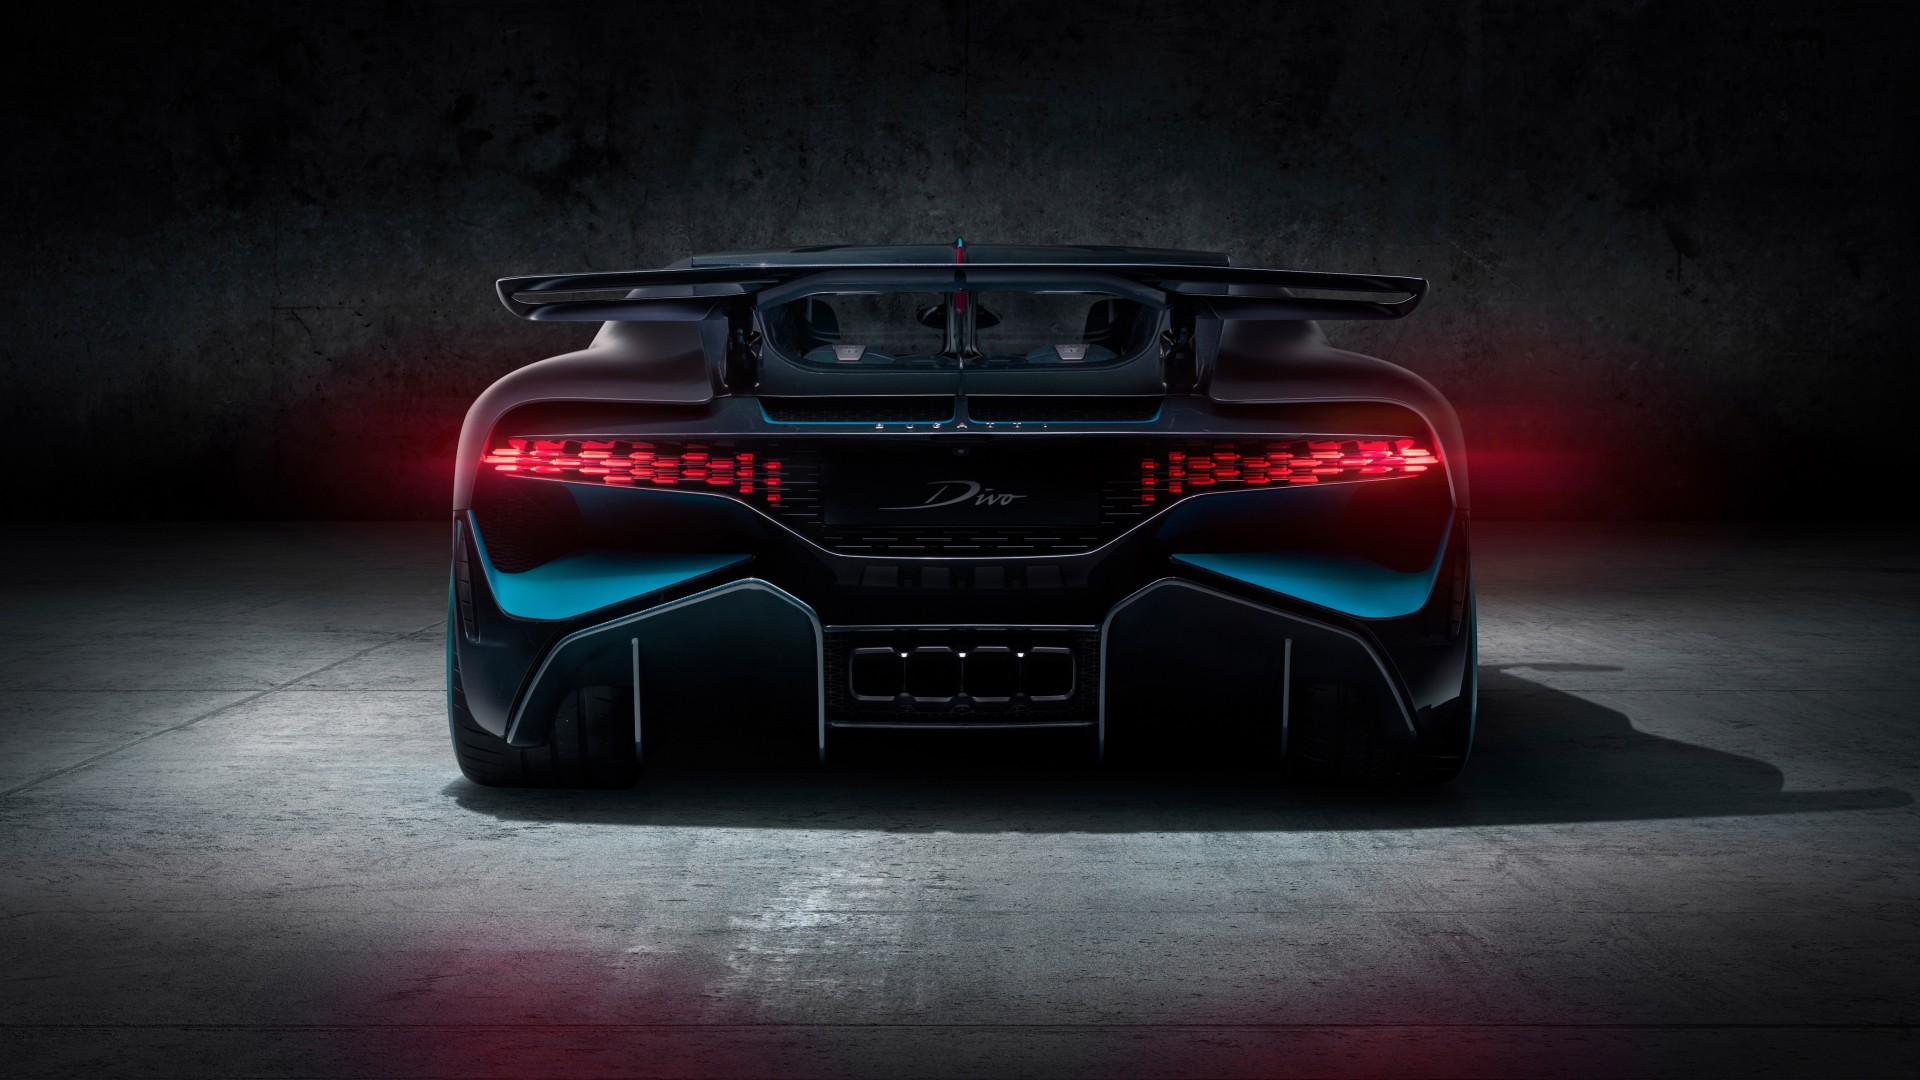 Land Rover Car Hd Wallpaper Download 2019 Bugatti Divo 4k 13 Wallpaper Hd Car Wallpapers Id